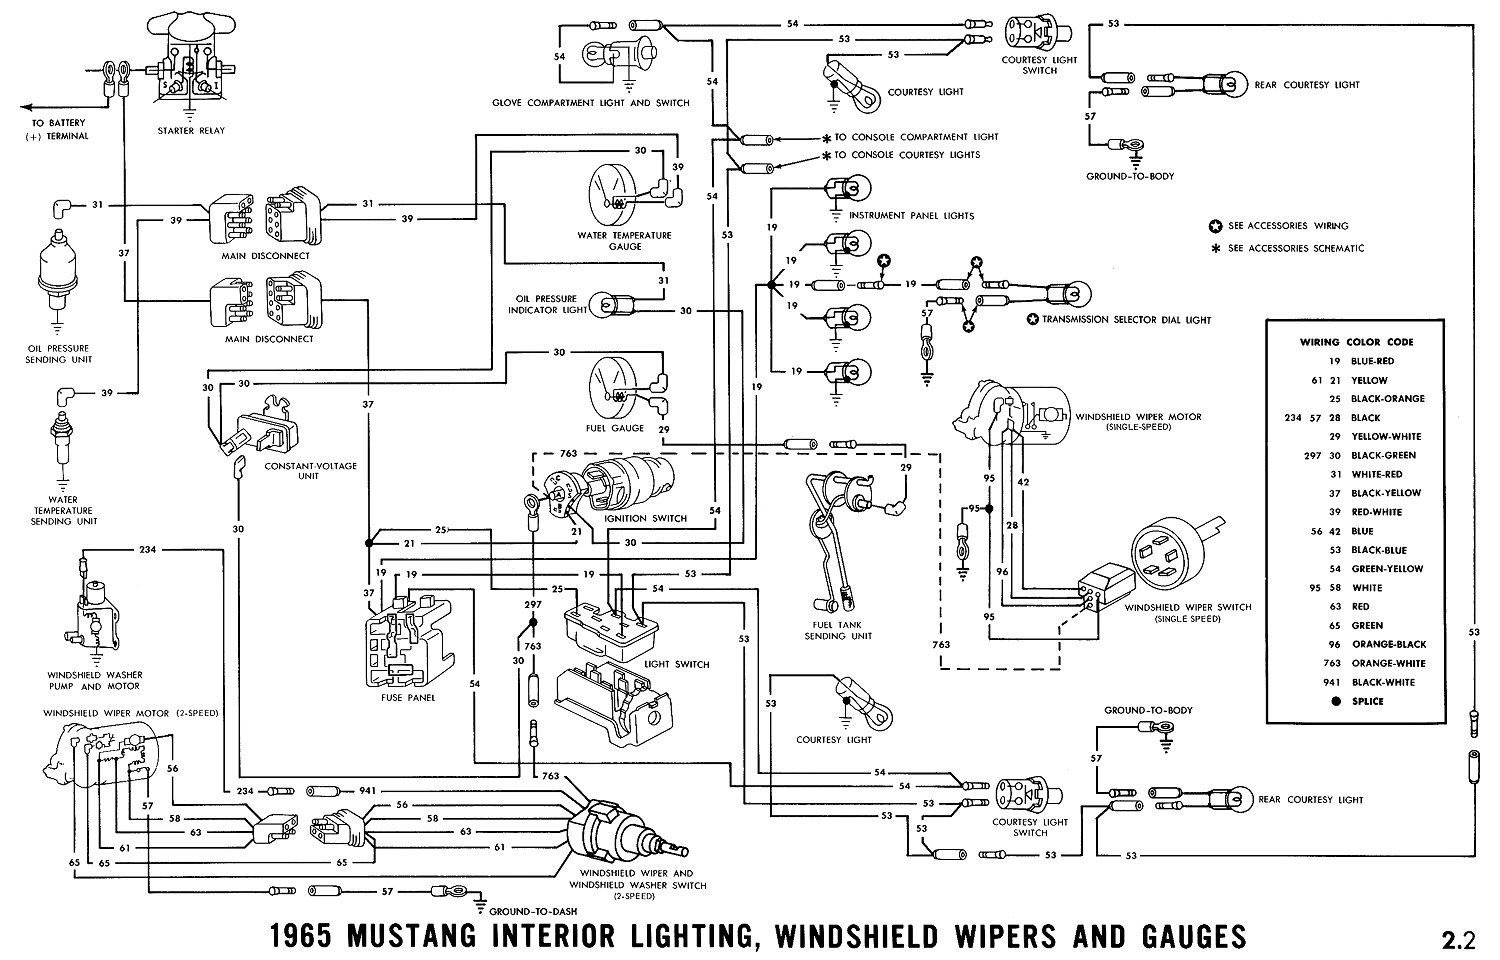 169F70 65 Mustang Wiper Wiring Diagram | Wiring Resources